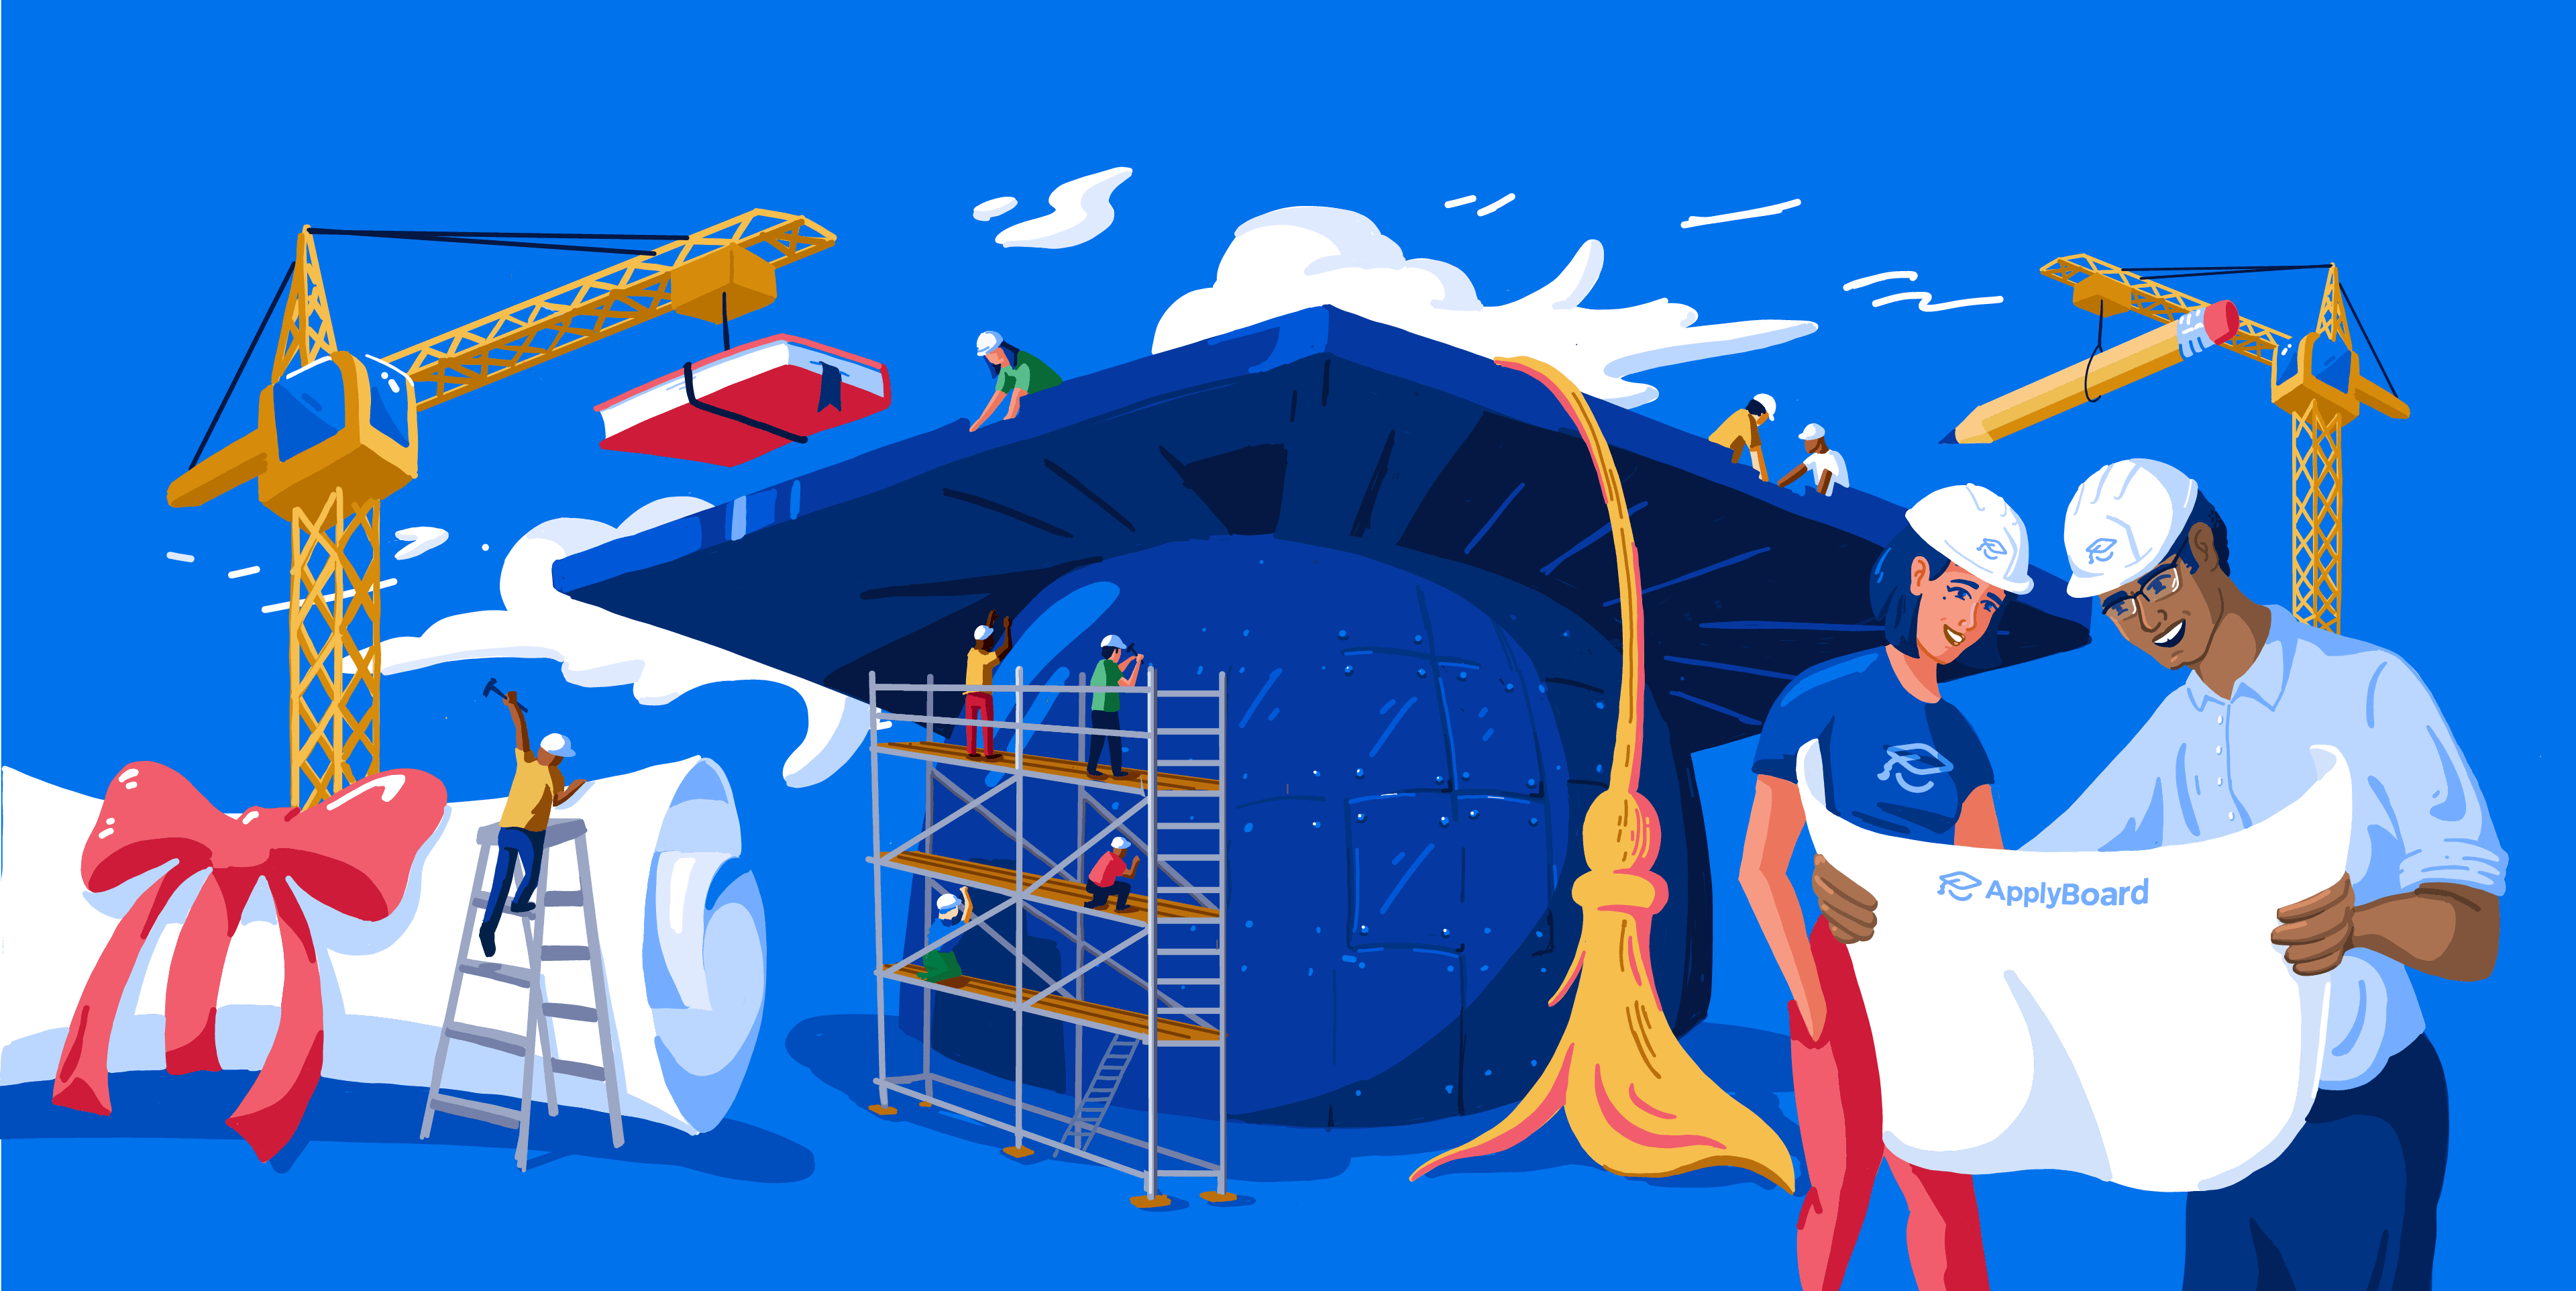 Illustration of building a better future